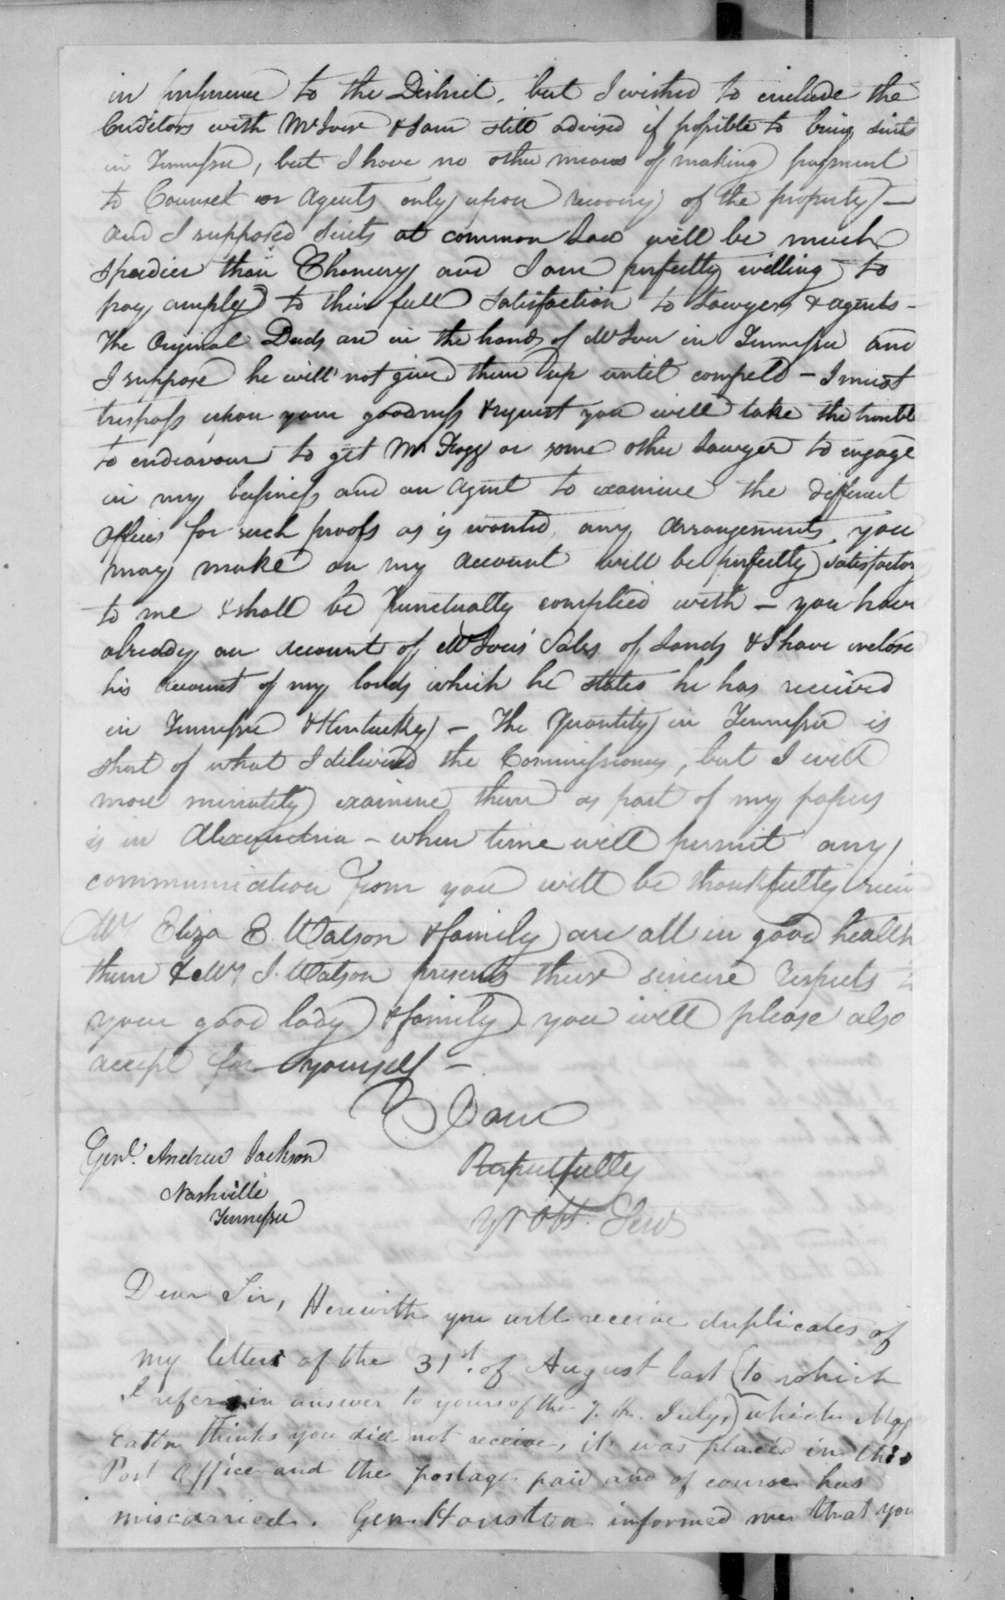 Unknown to Andrew Jackson, August 31, 1825